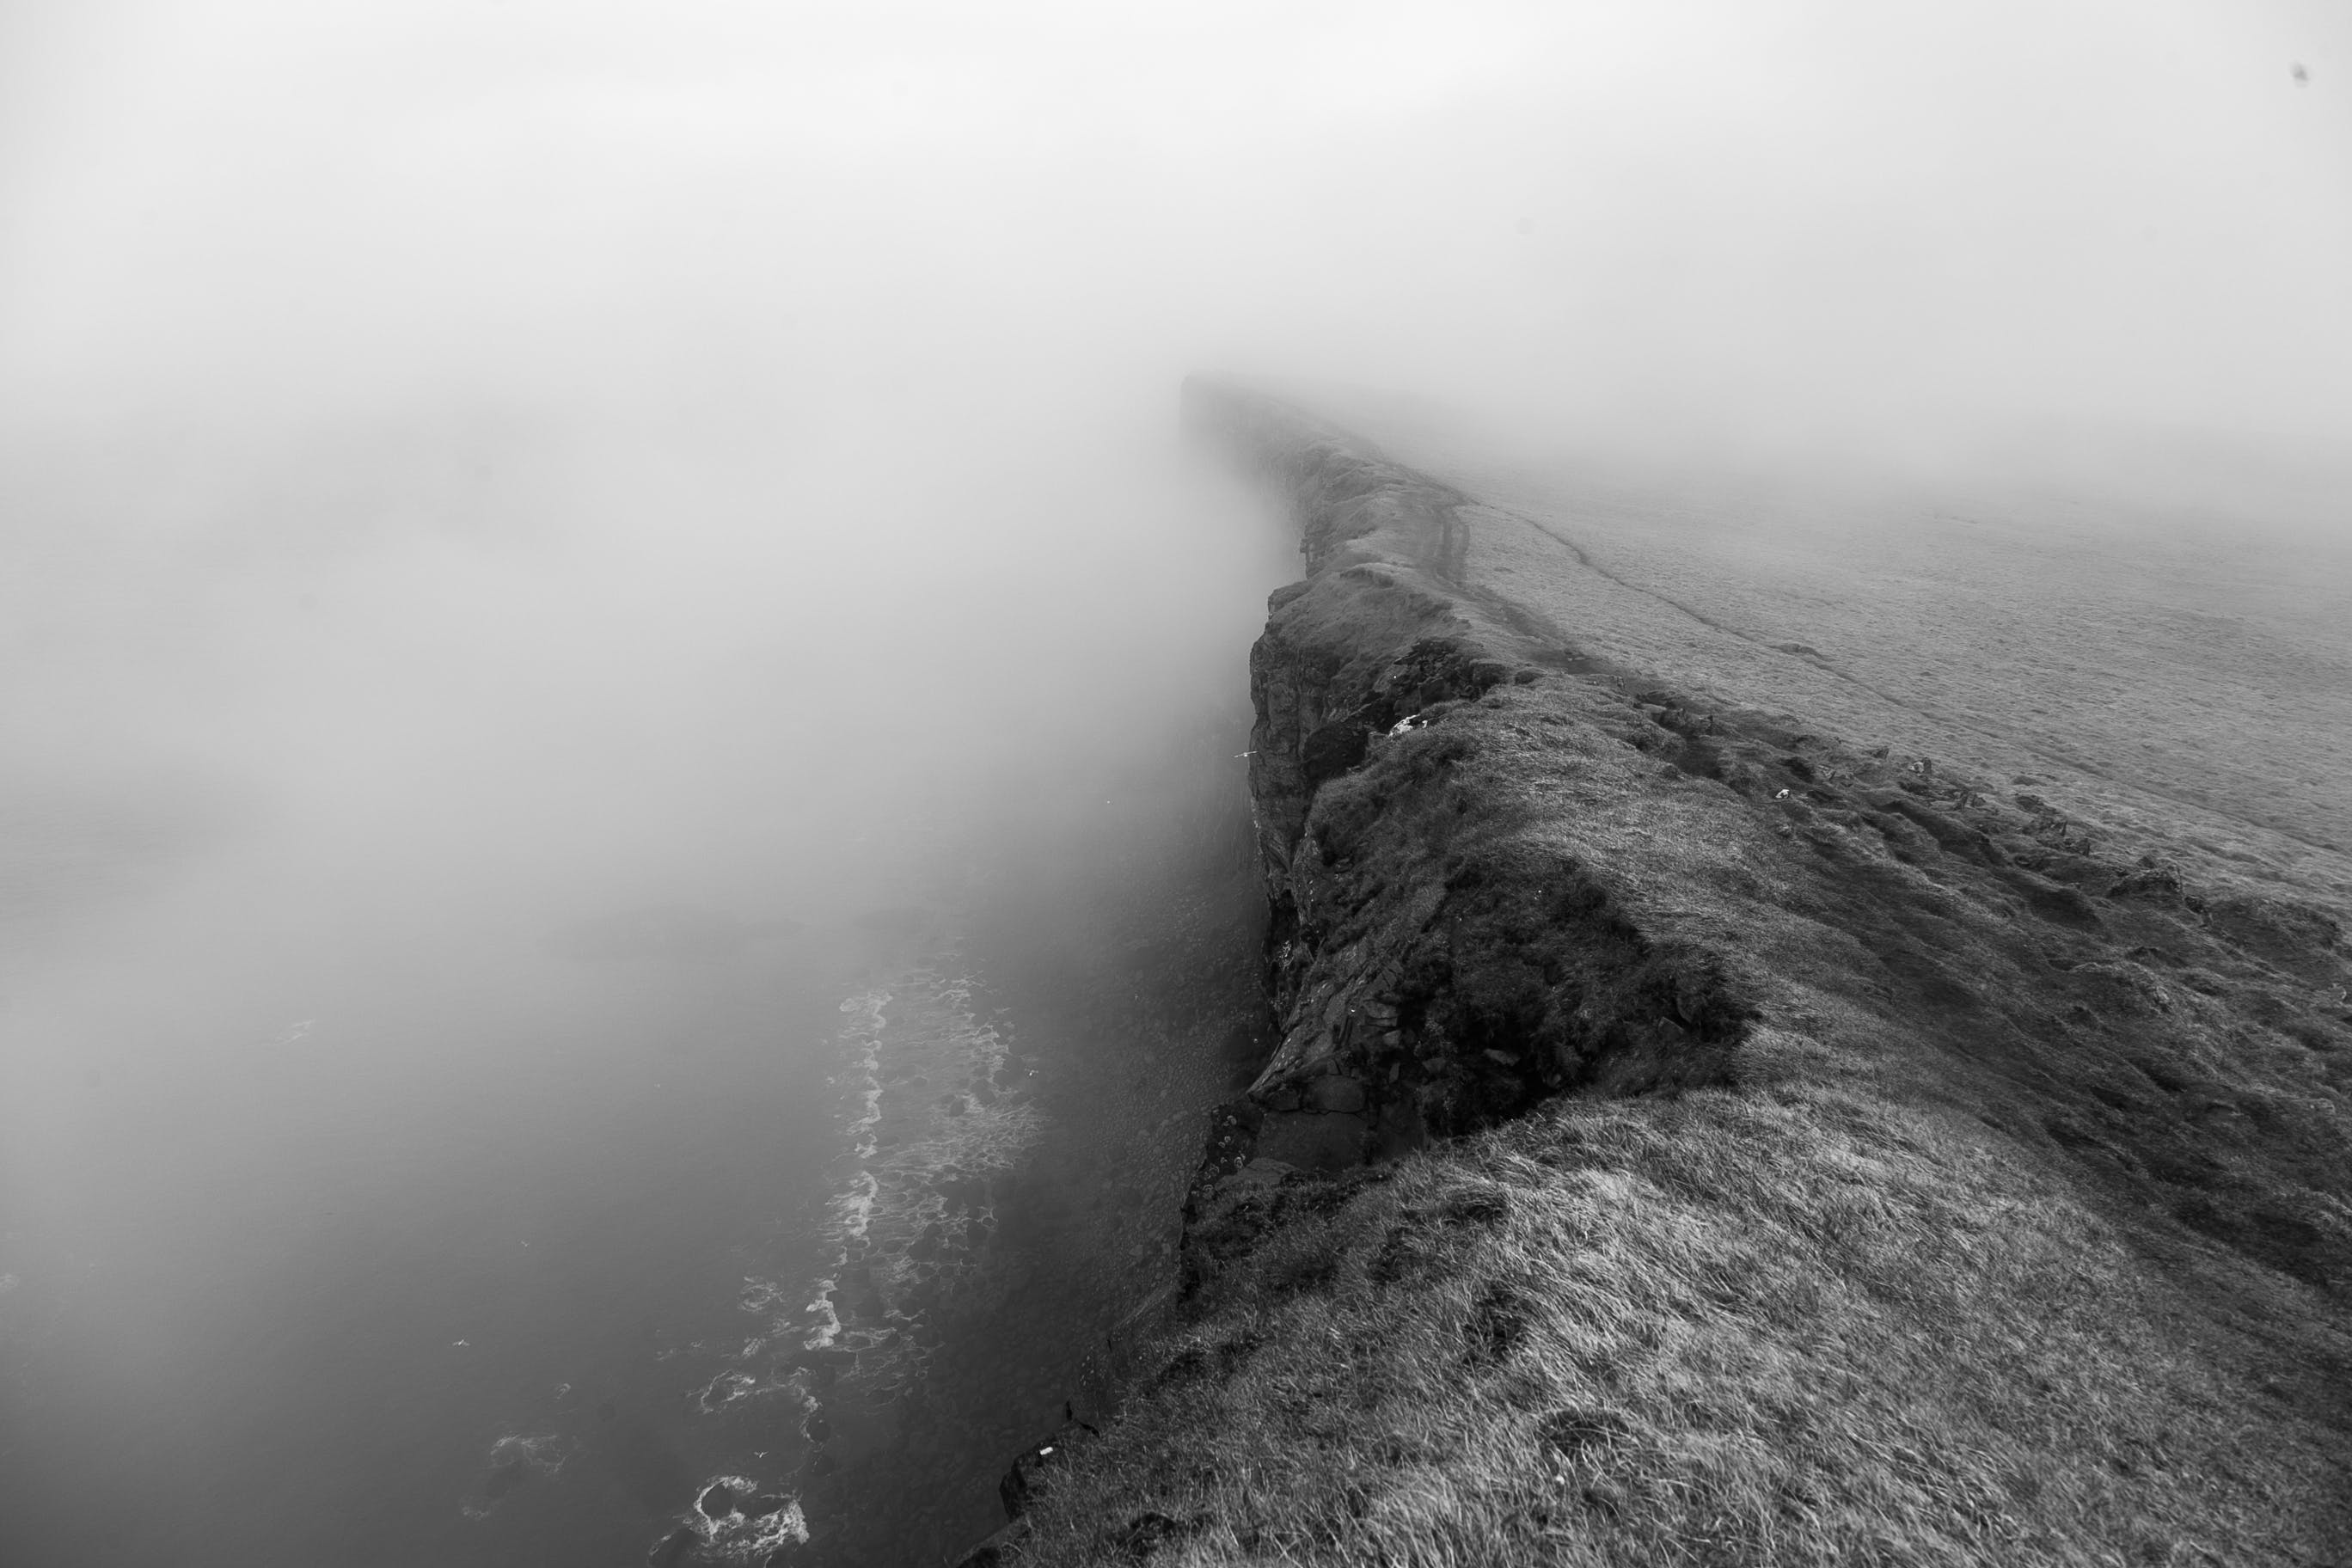 Grayscale Photo of Cliff Near Body of Water